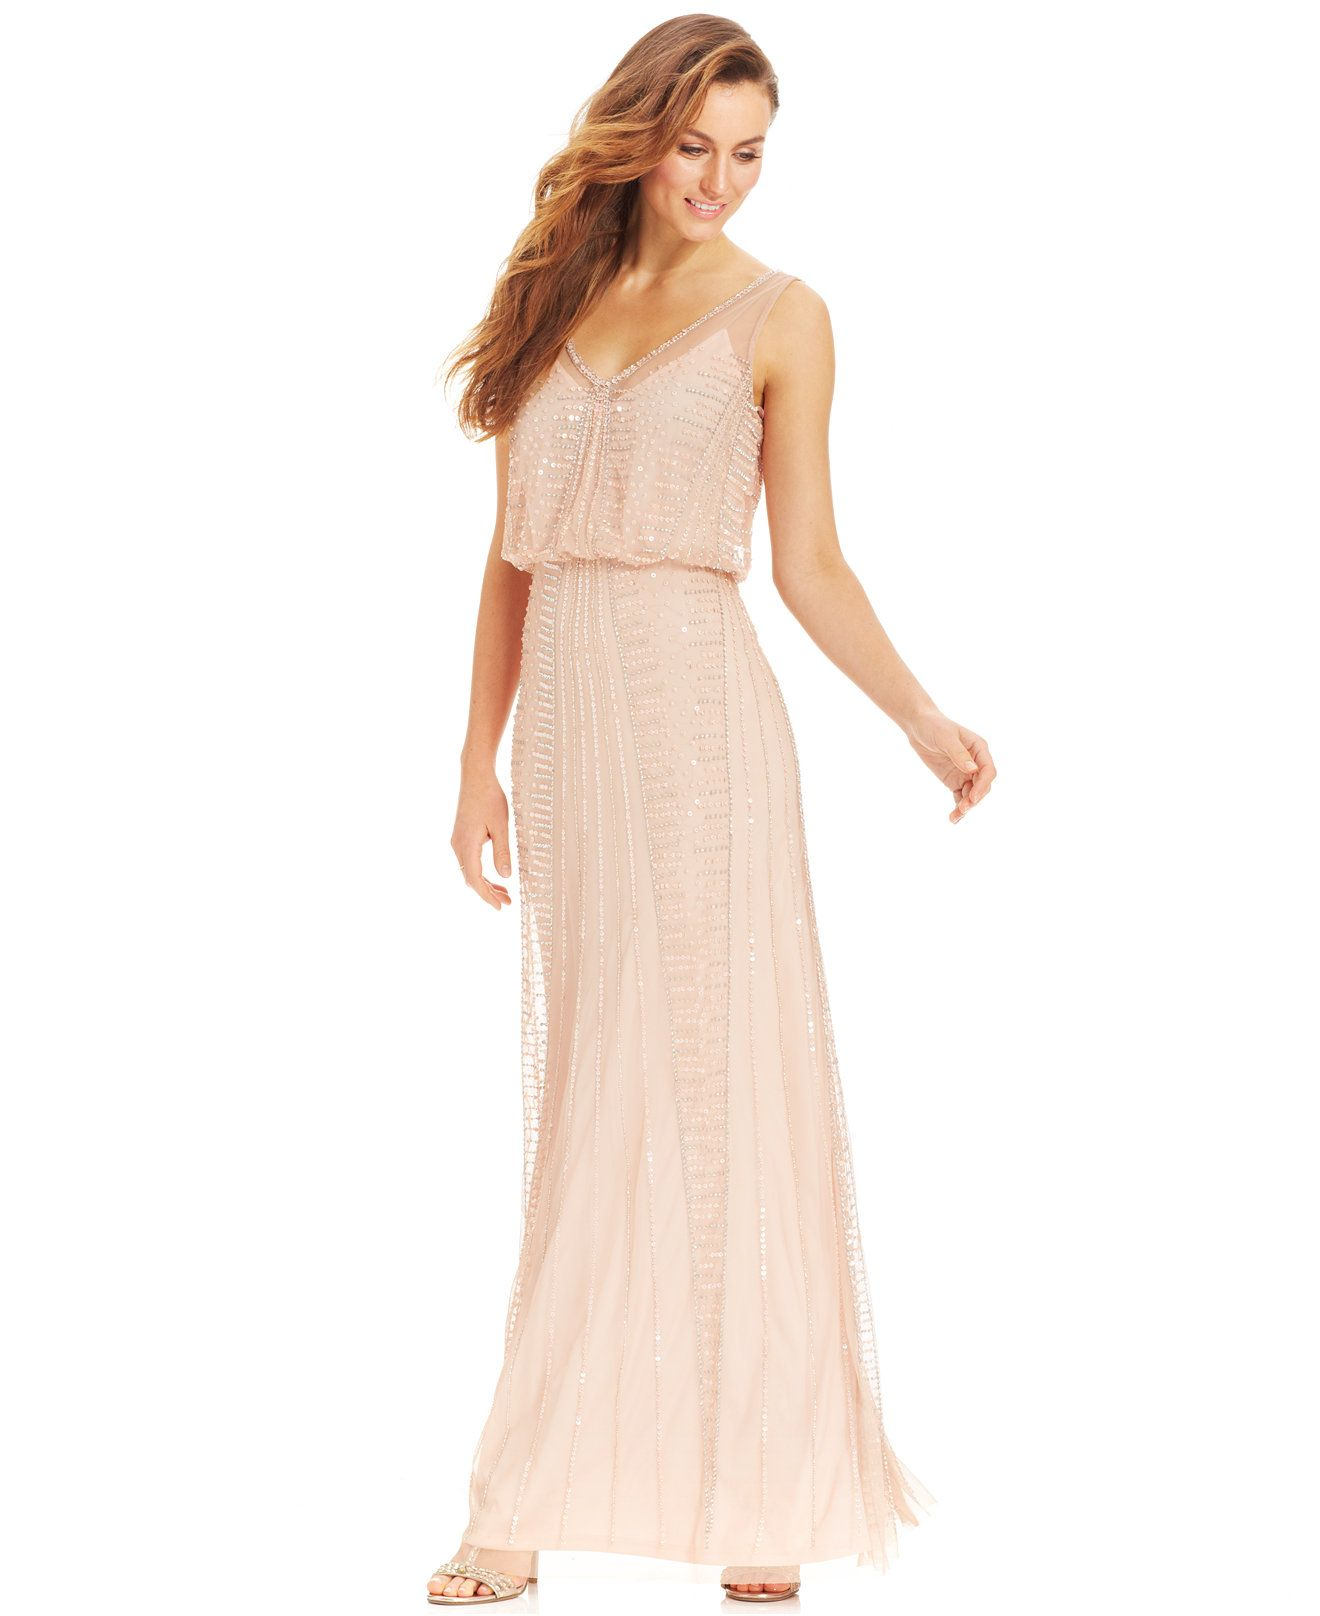 299 not sure the color adrianna papell illusion beaded blouson gown dresses